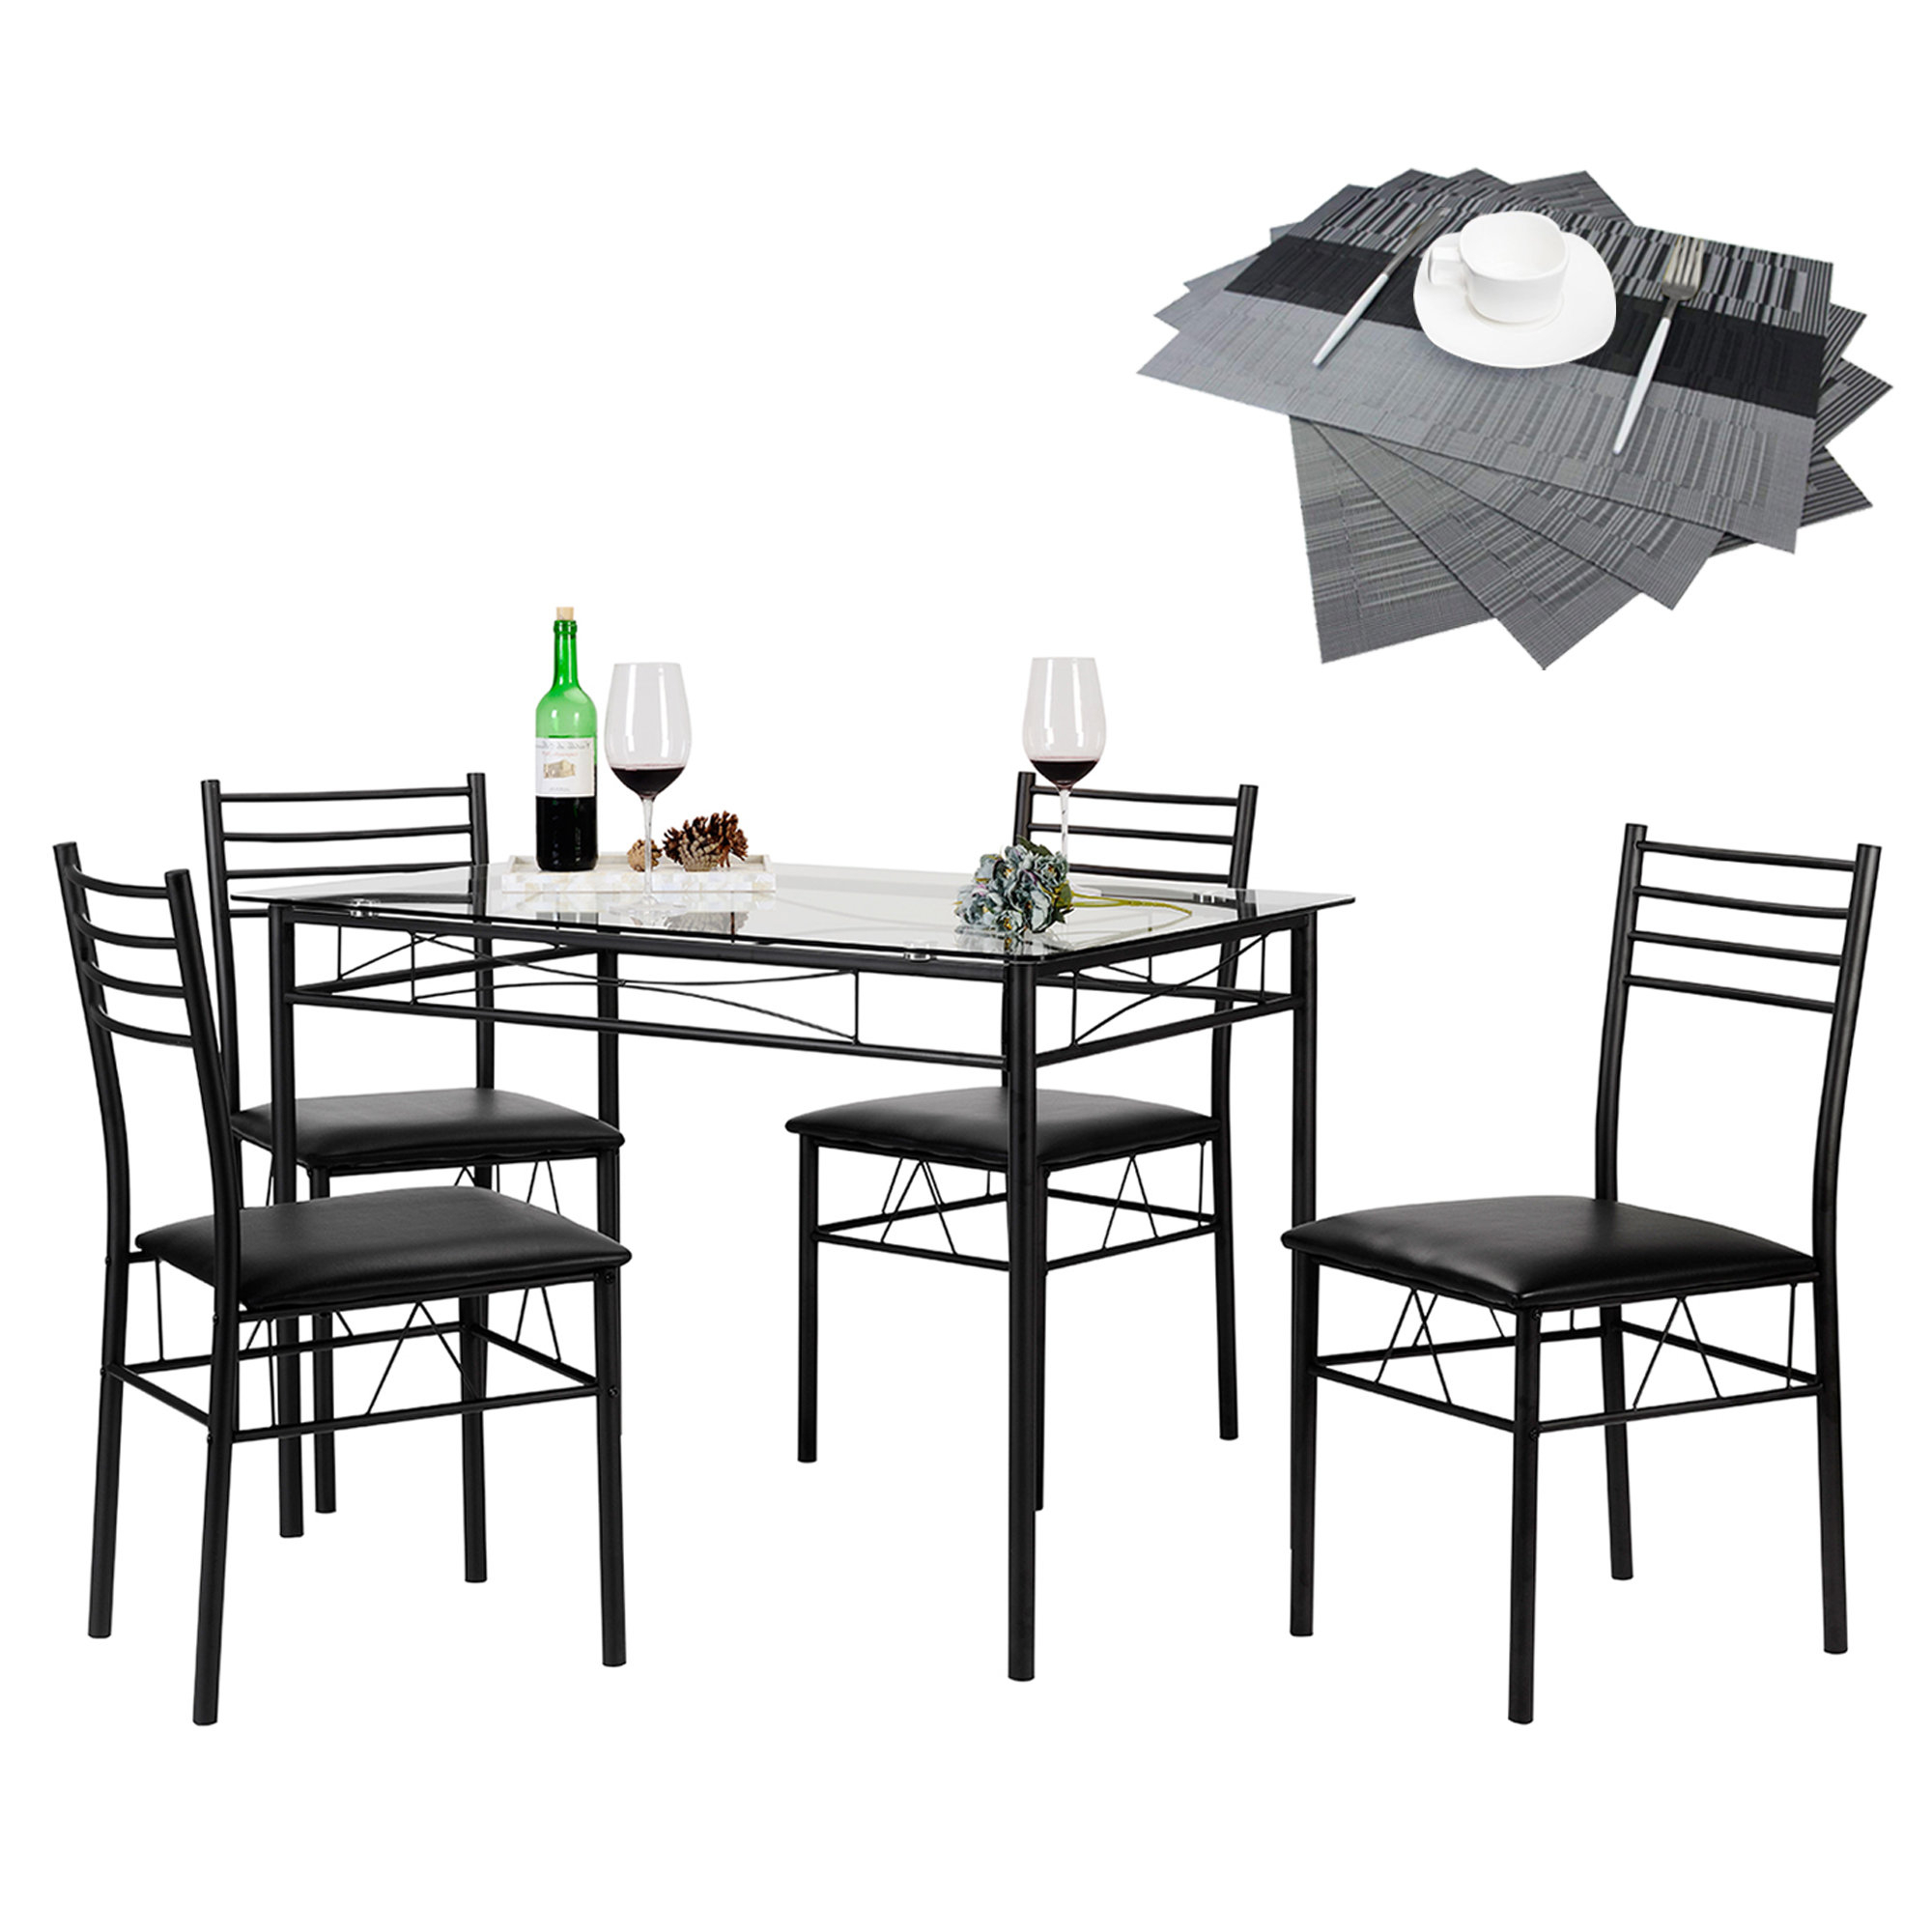 Wayfair Within Trendy North Reading 5 Piece Dining Table Sets (View 3 of 25)